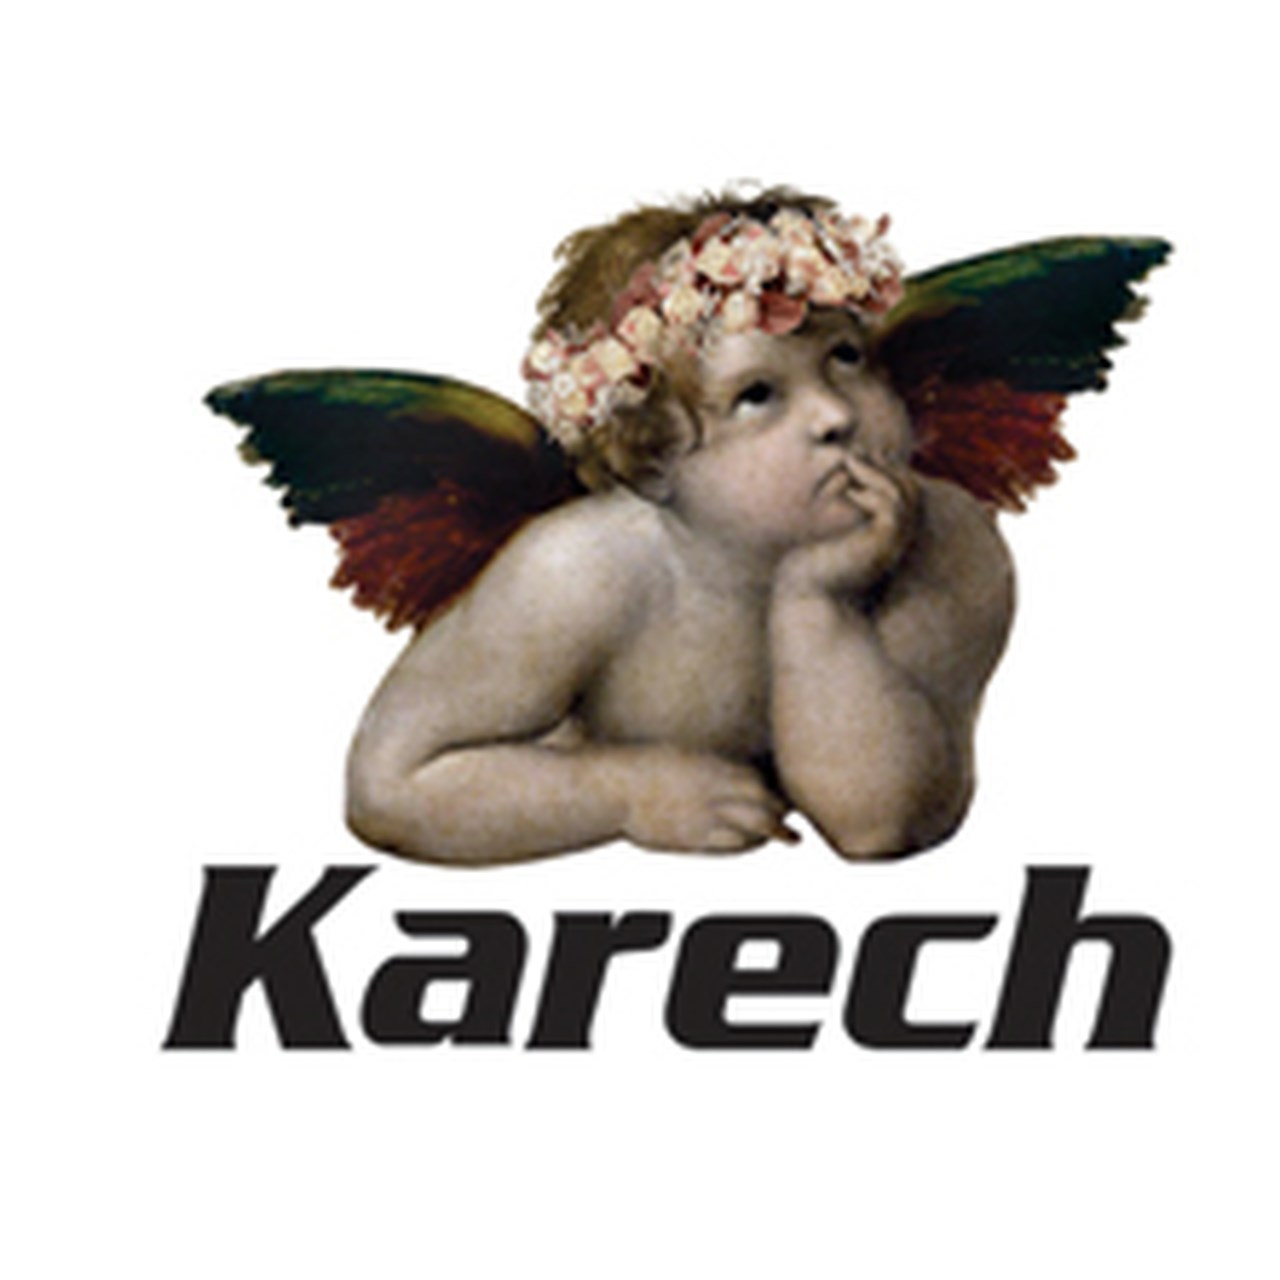 Karech boutique